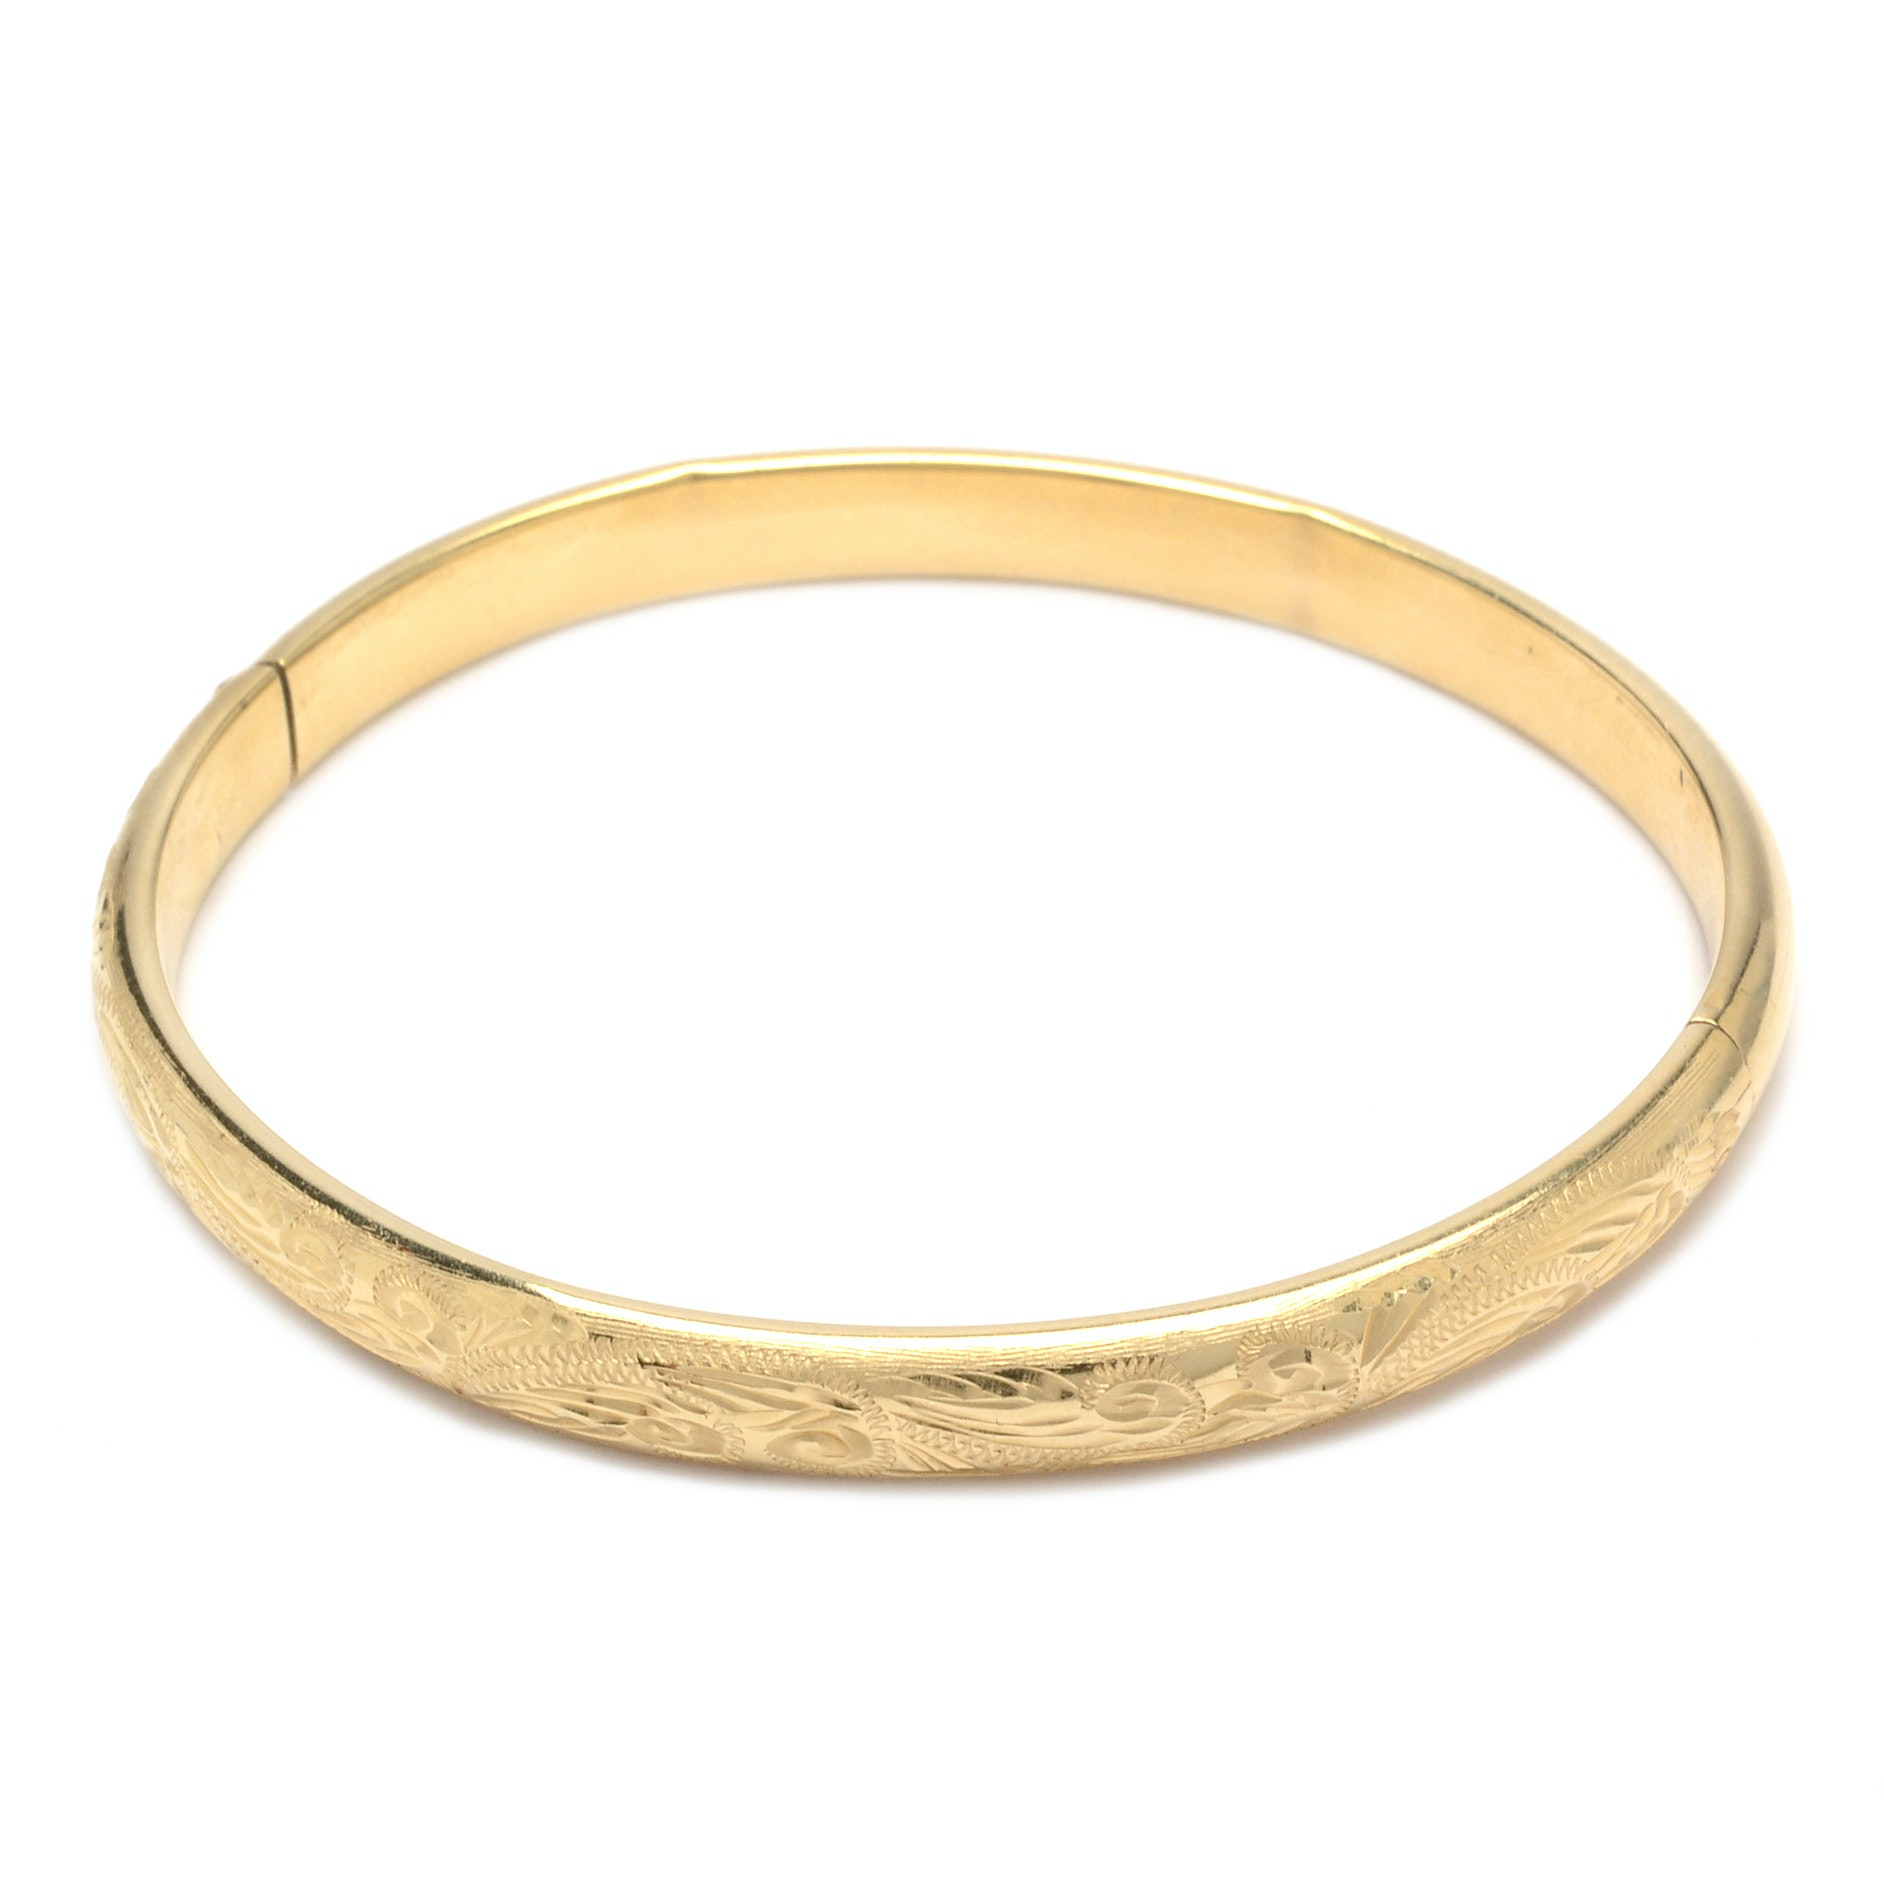 14K Yellow Gold Milor Italy Bangle Bracelet